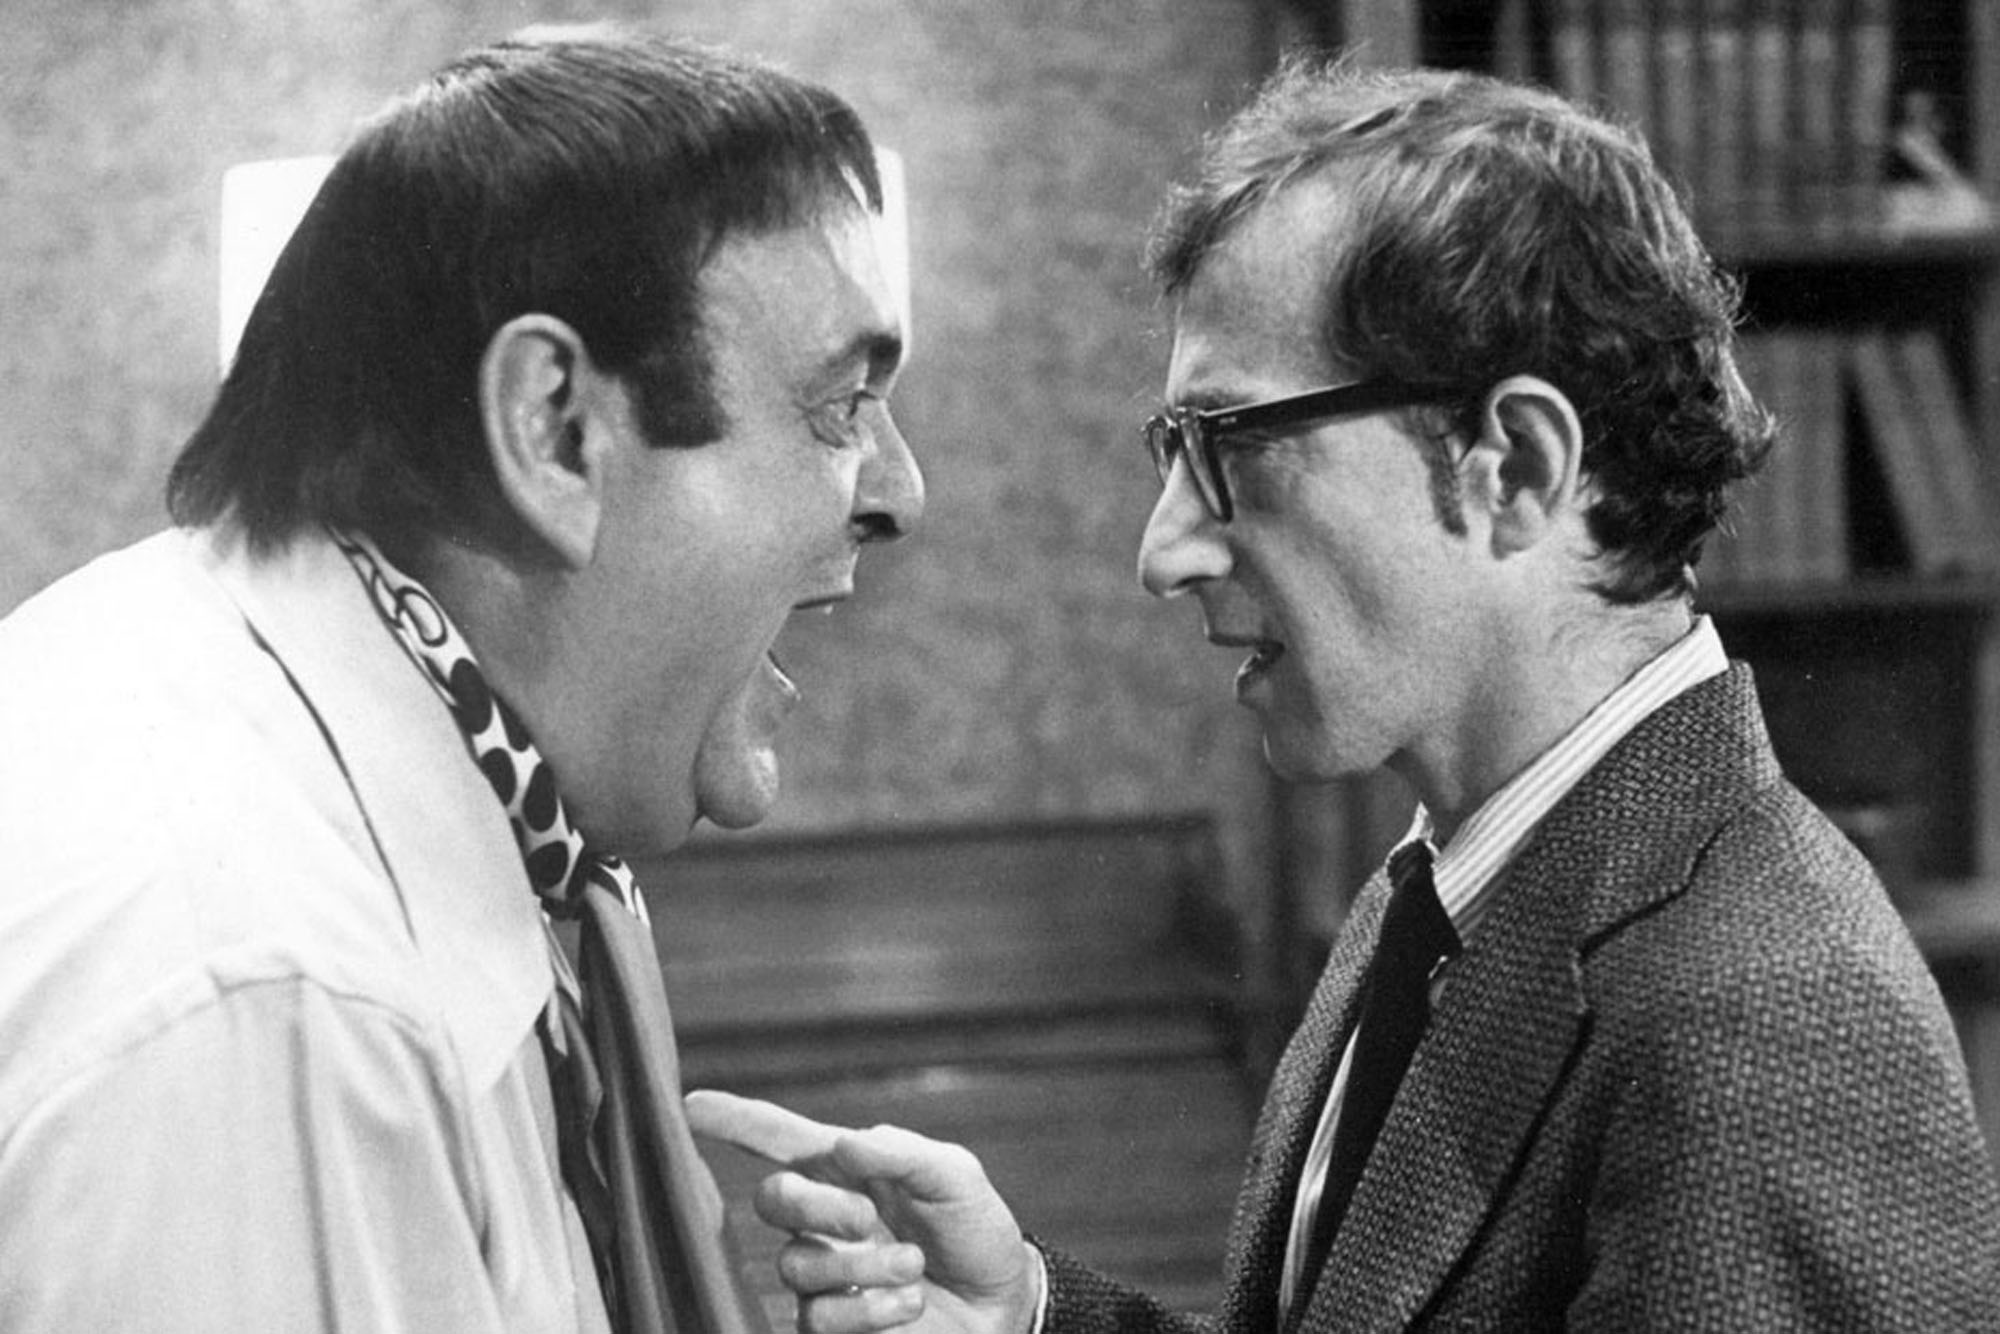 Zero Mostel gives Woody Allen a piece of his mind.